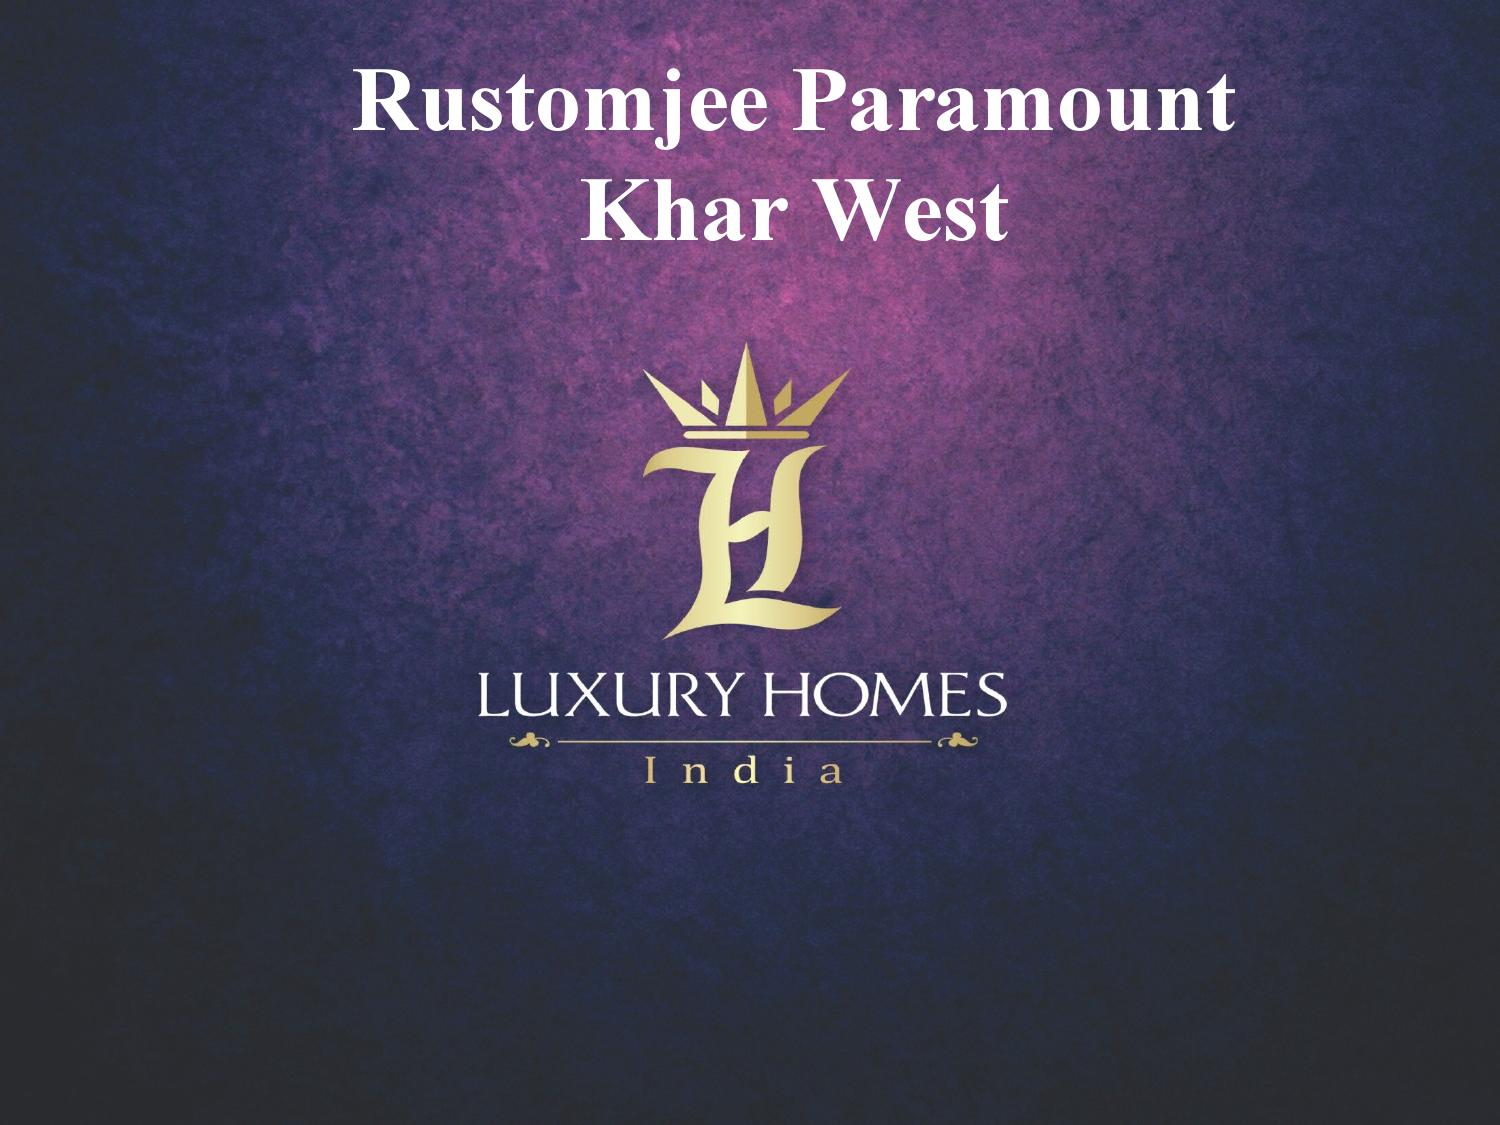 Rustomjee Paramount Khar West Call 91 8879387111 By